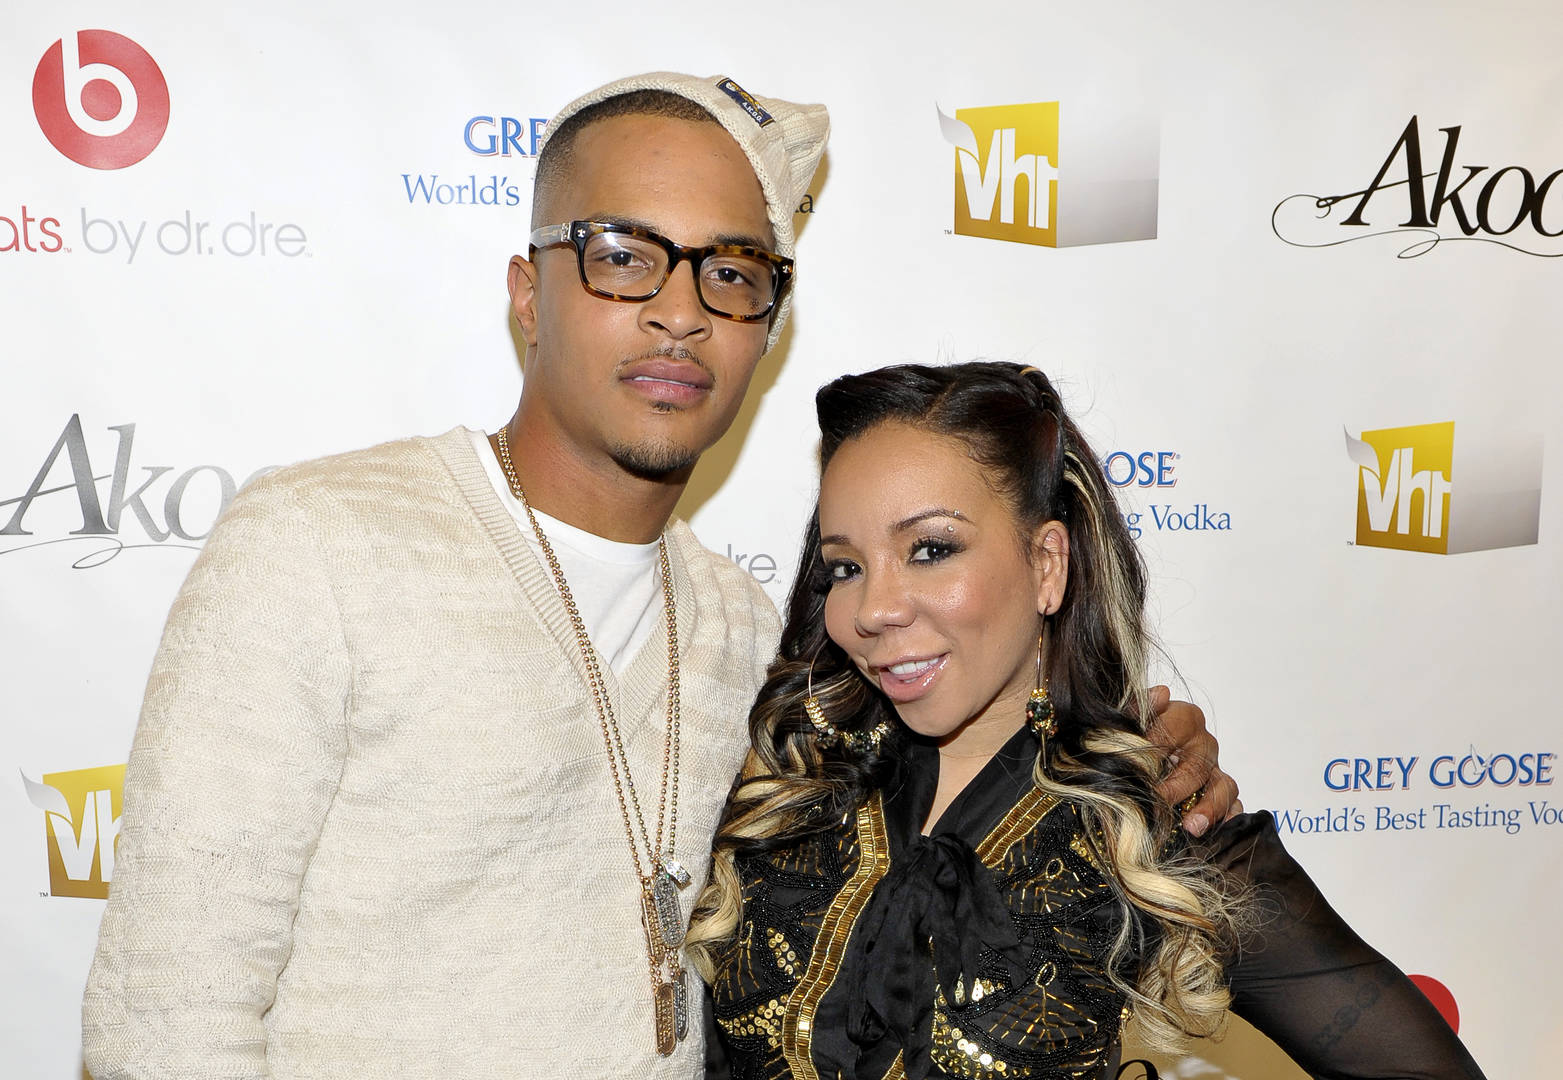 T.I. and Tiny attend the premiere screening of T.I. & Tiny: The Family Hustle